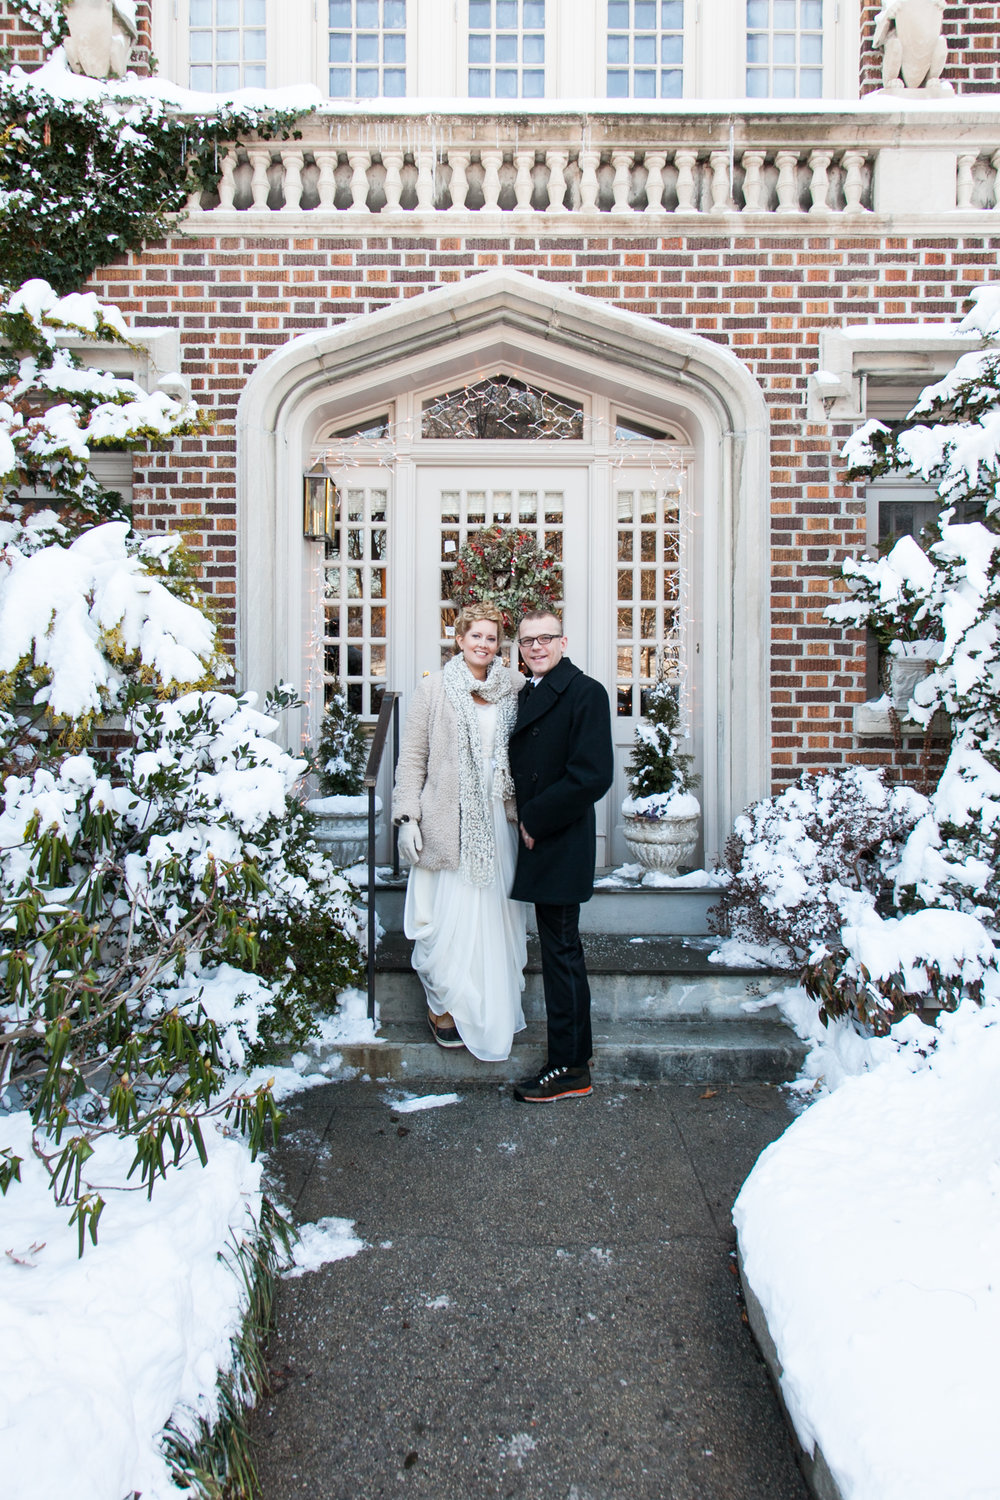 HeatherPhelpsLipton-Modern-WeddingPhotography-GreenBuilding-winter-prospectpark-10.jpg